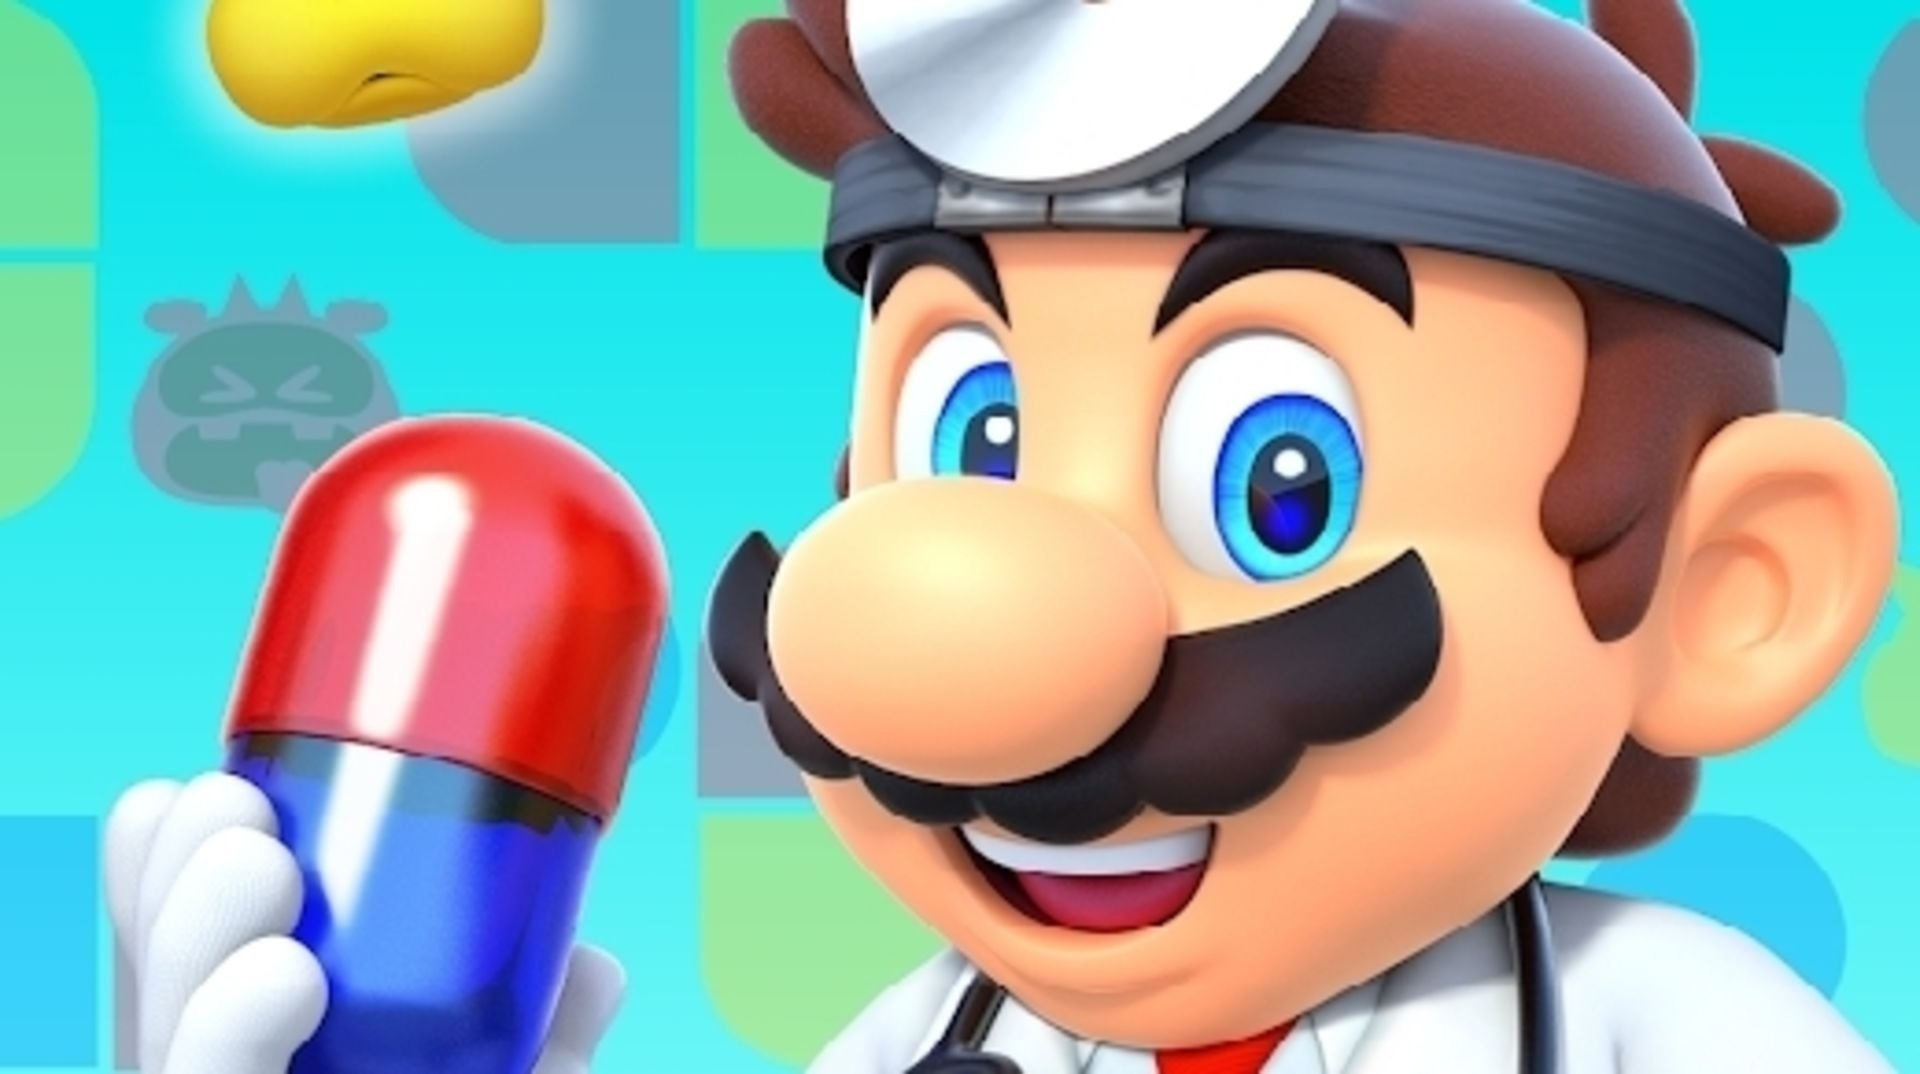 Dr. Mario World Racks Up Two Million Downloads In Its First 72 Hours